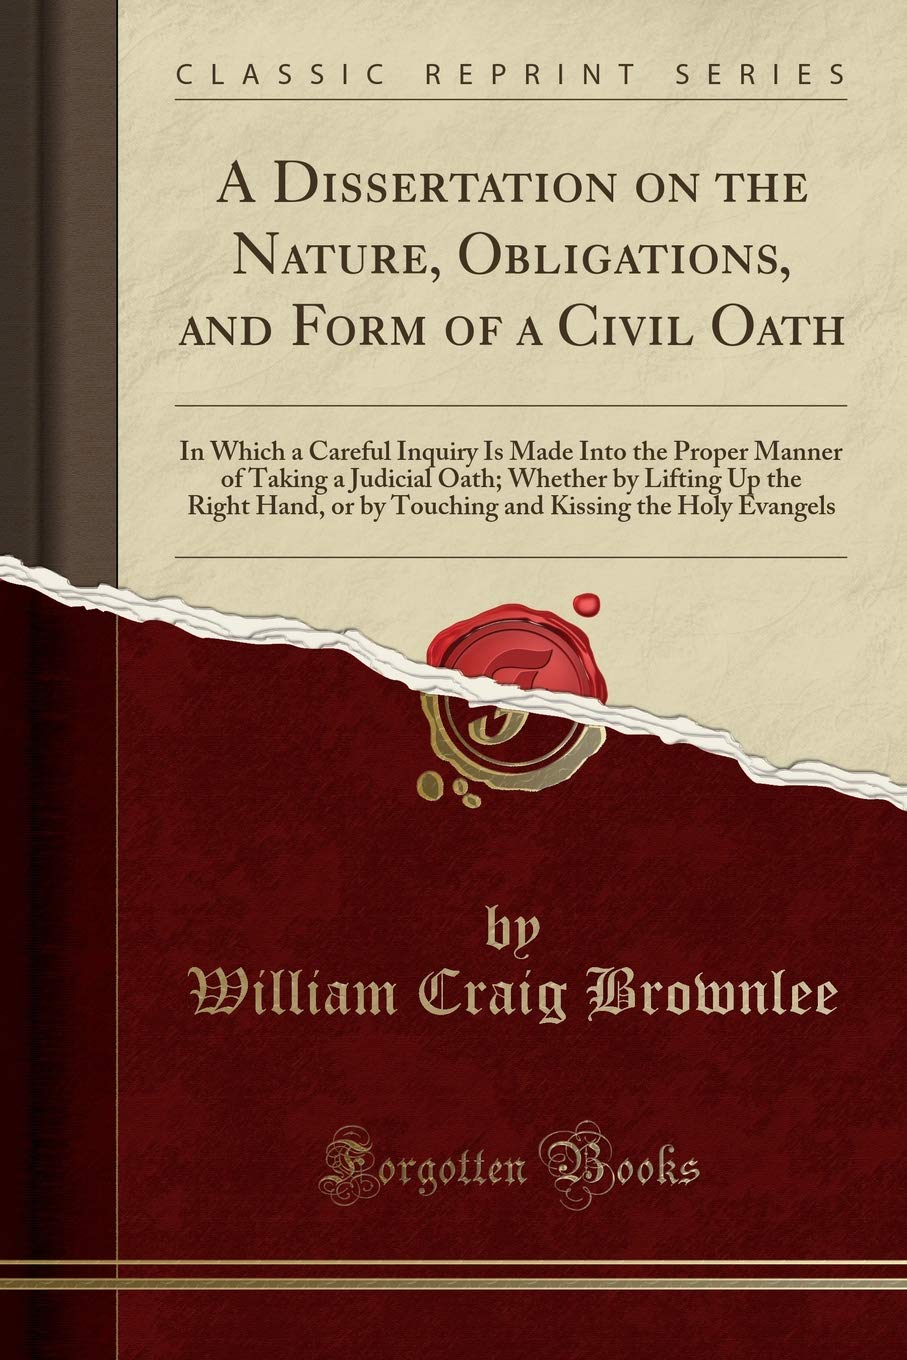 Download A Dissertation on the Nature, Obligations, and Form of a Civil Oath: In Which a Careful Inquiry Is Made Into the Proper Manner of Taking a Judicial ... Kissing the Holy Evangels (Classic Reprint) pdf